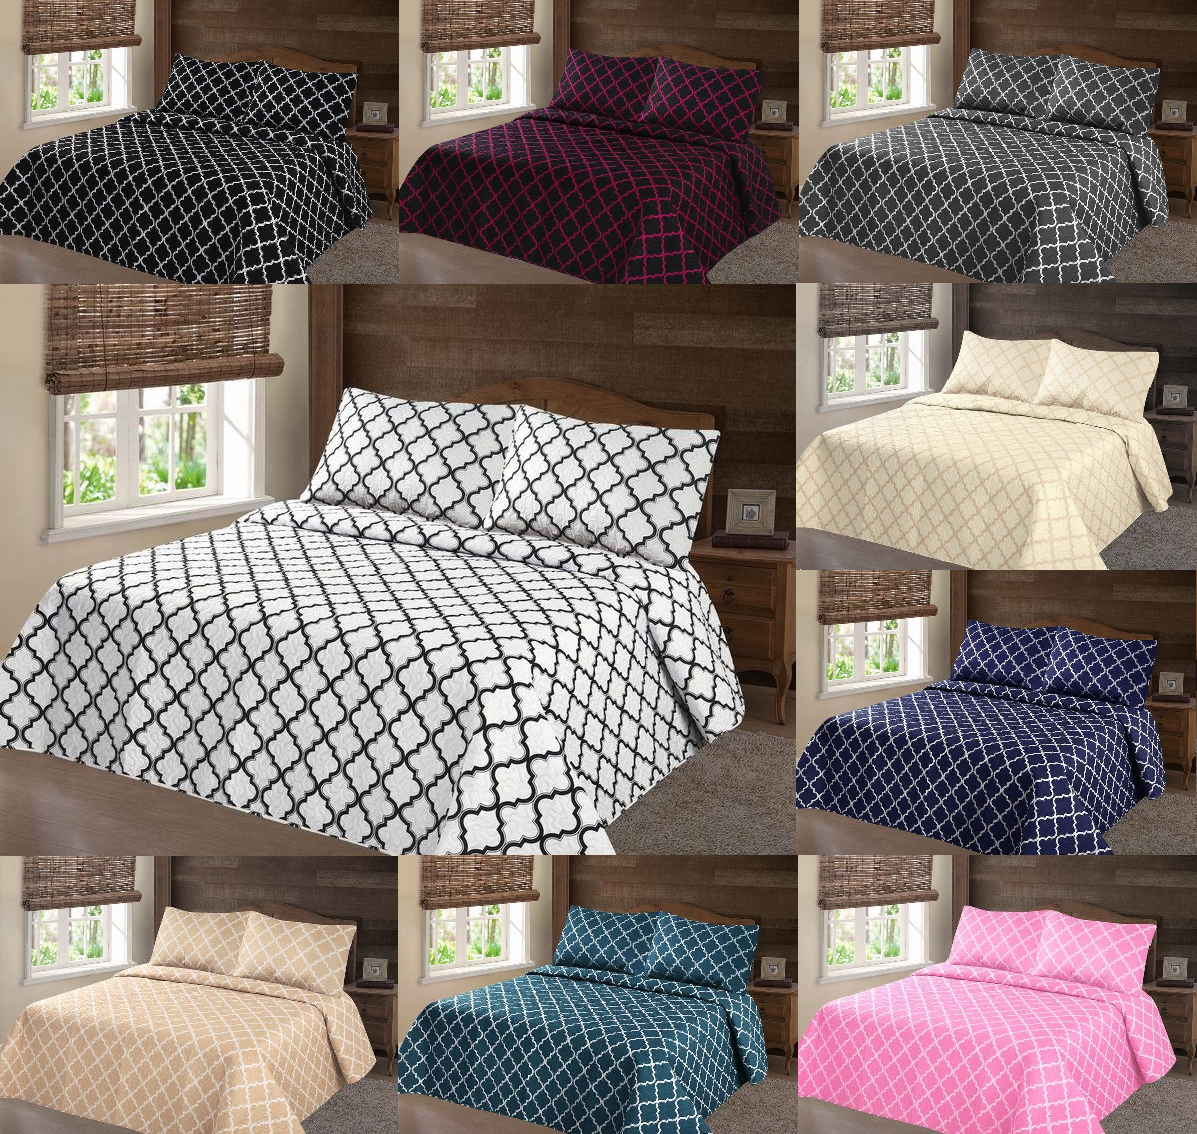 queen coverlet set  new pc nena bed bedspread quilt set  - bedspread sets king  pc lancaster geometric bed bedspread quilt set coverletmodern in  sizes